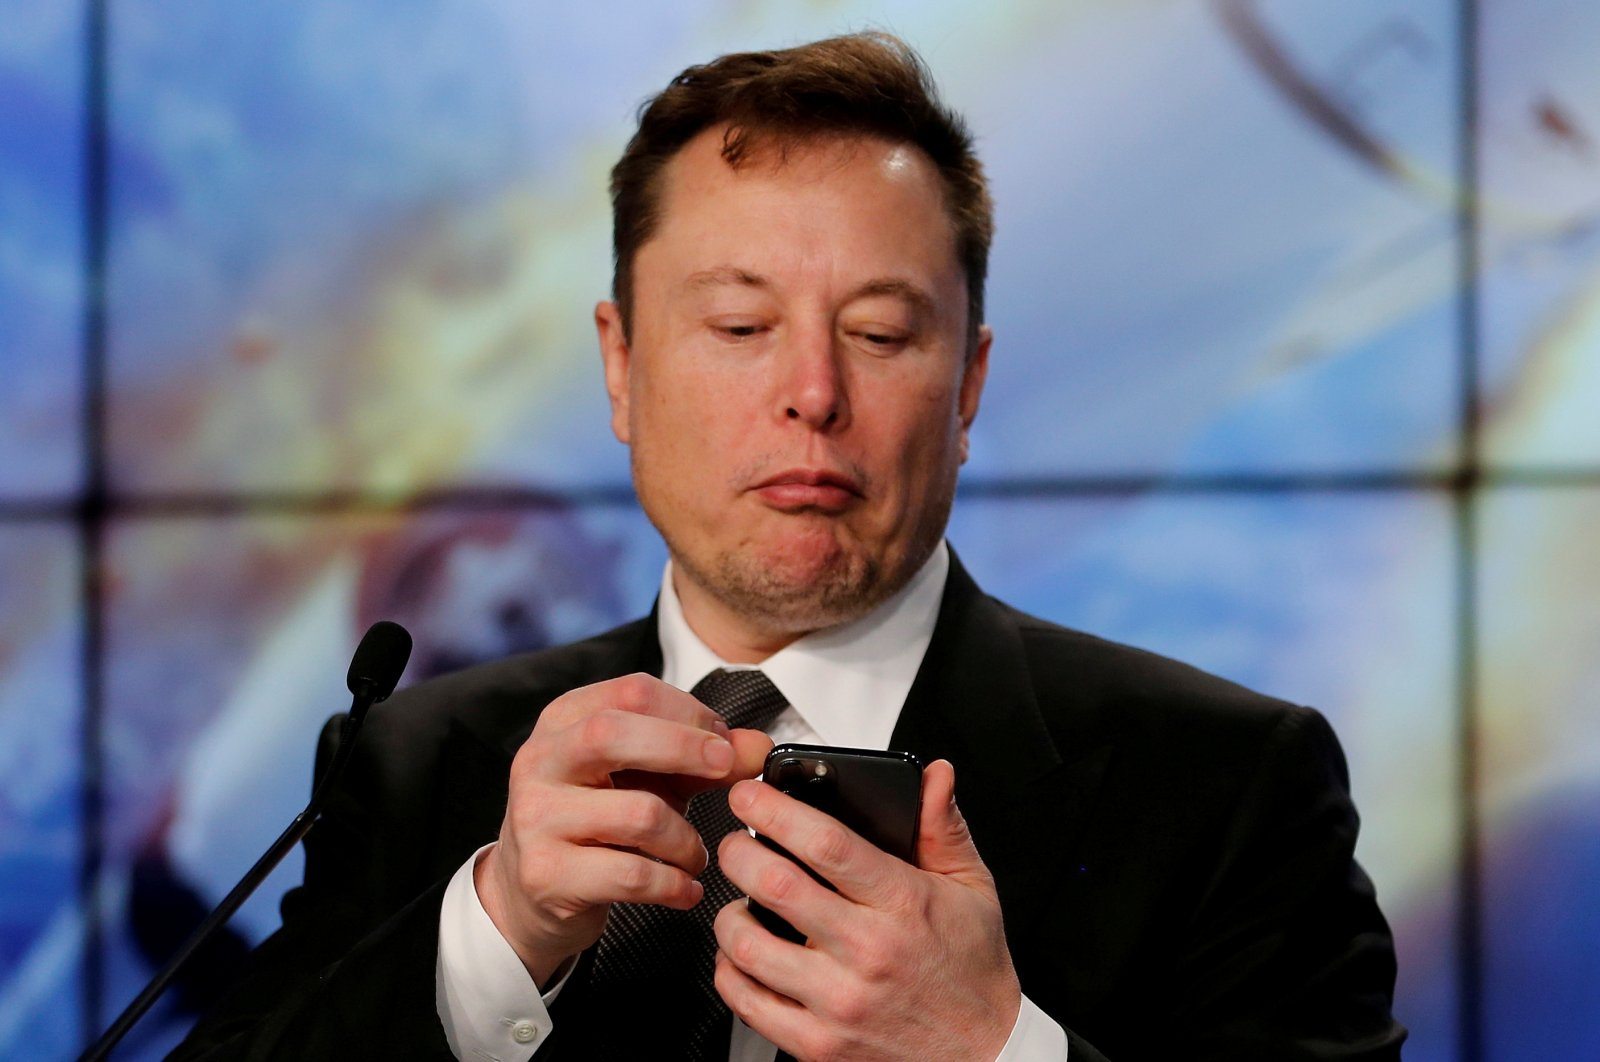 Elon Musk looks at his mobile phone during a post-launch news conference at the Kennedy Space Center in Cape Canaveral, Florida, U.S. Jan. 19, 2020. (Reuters Photo)